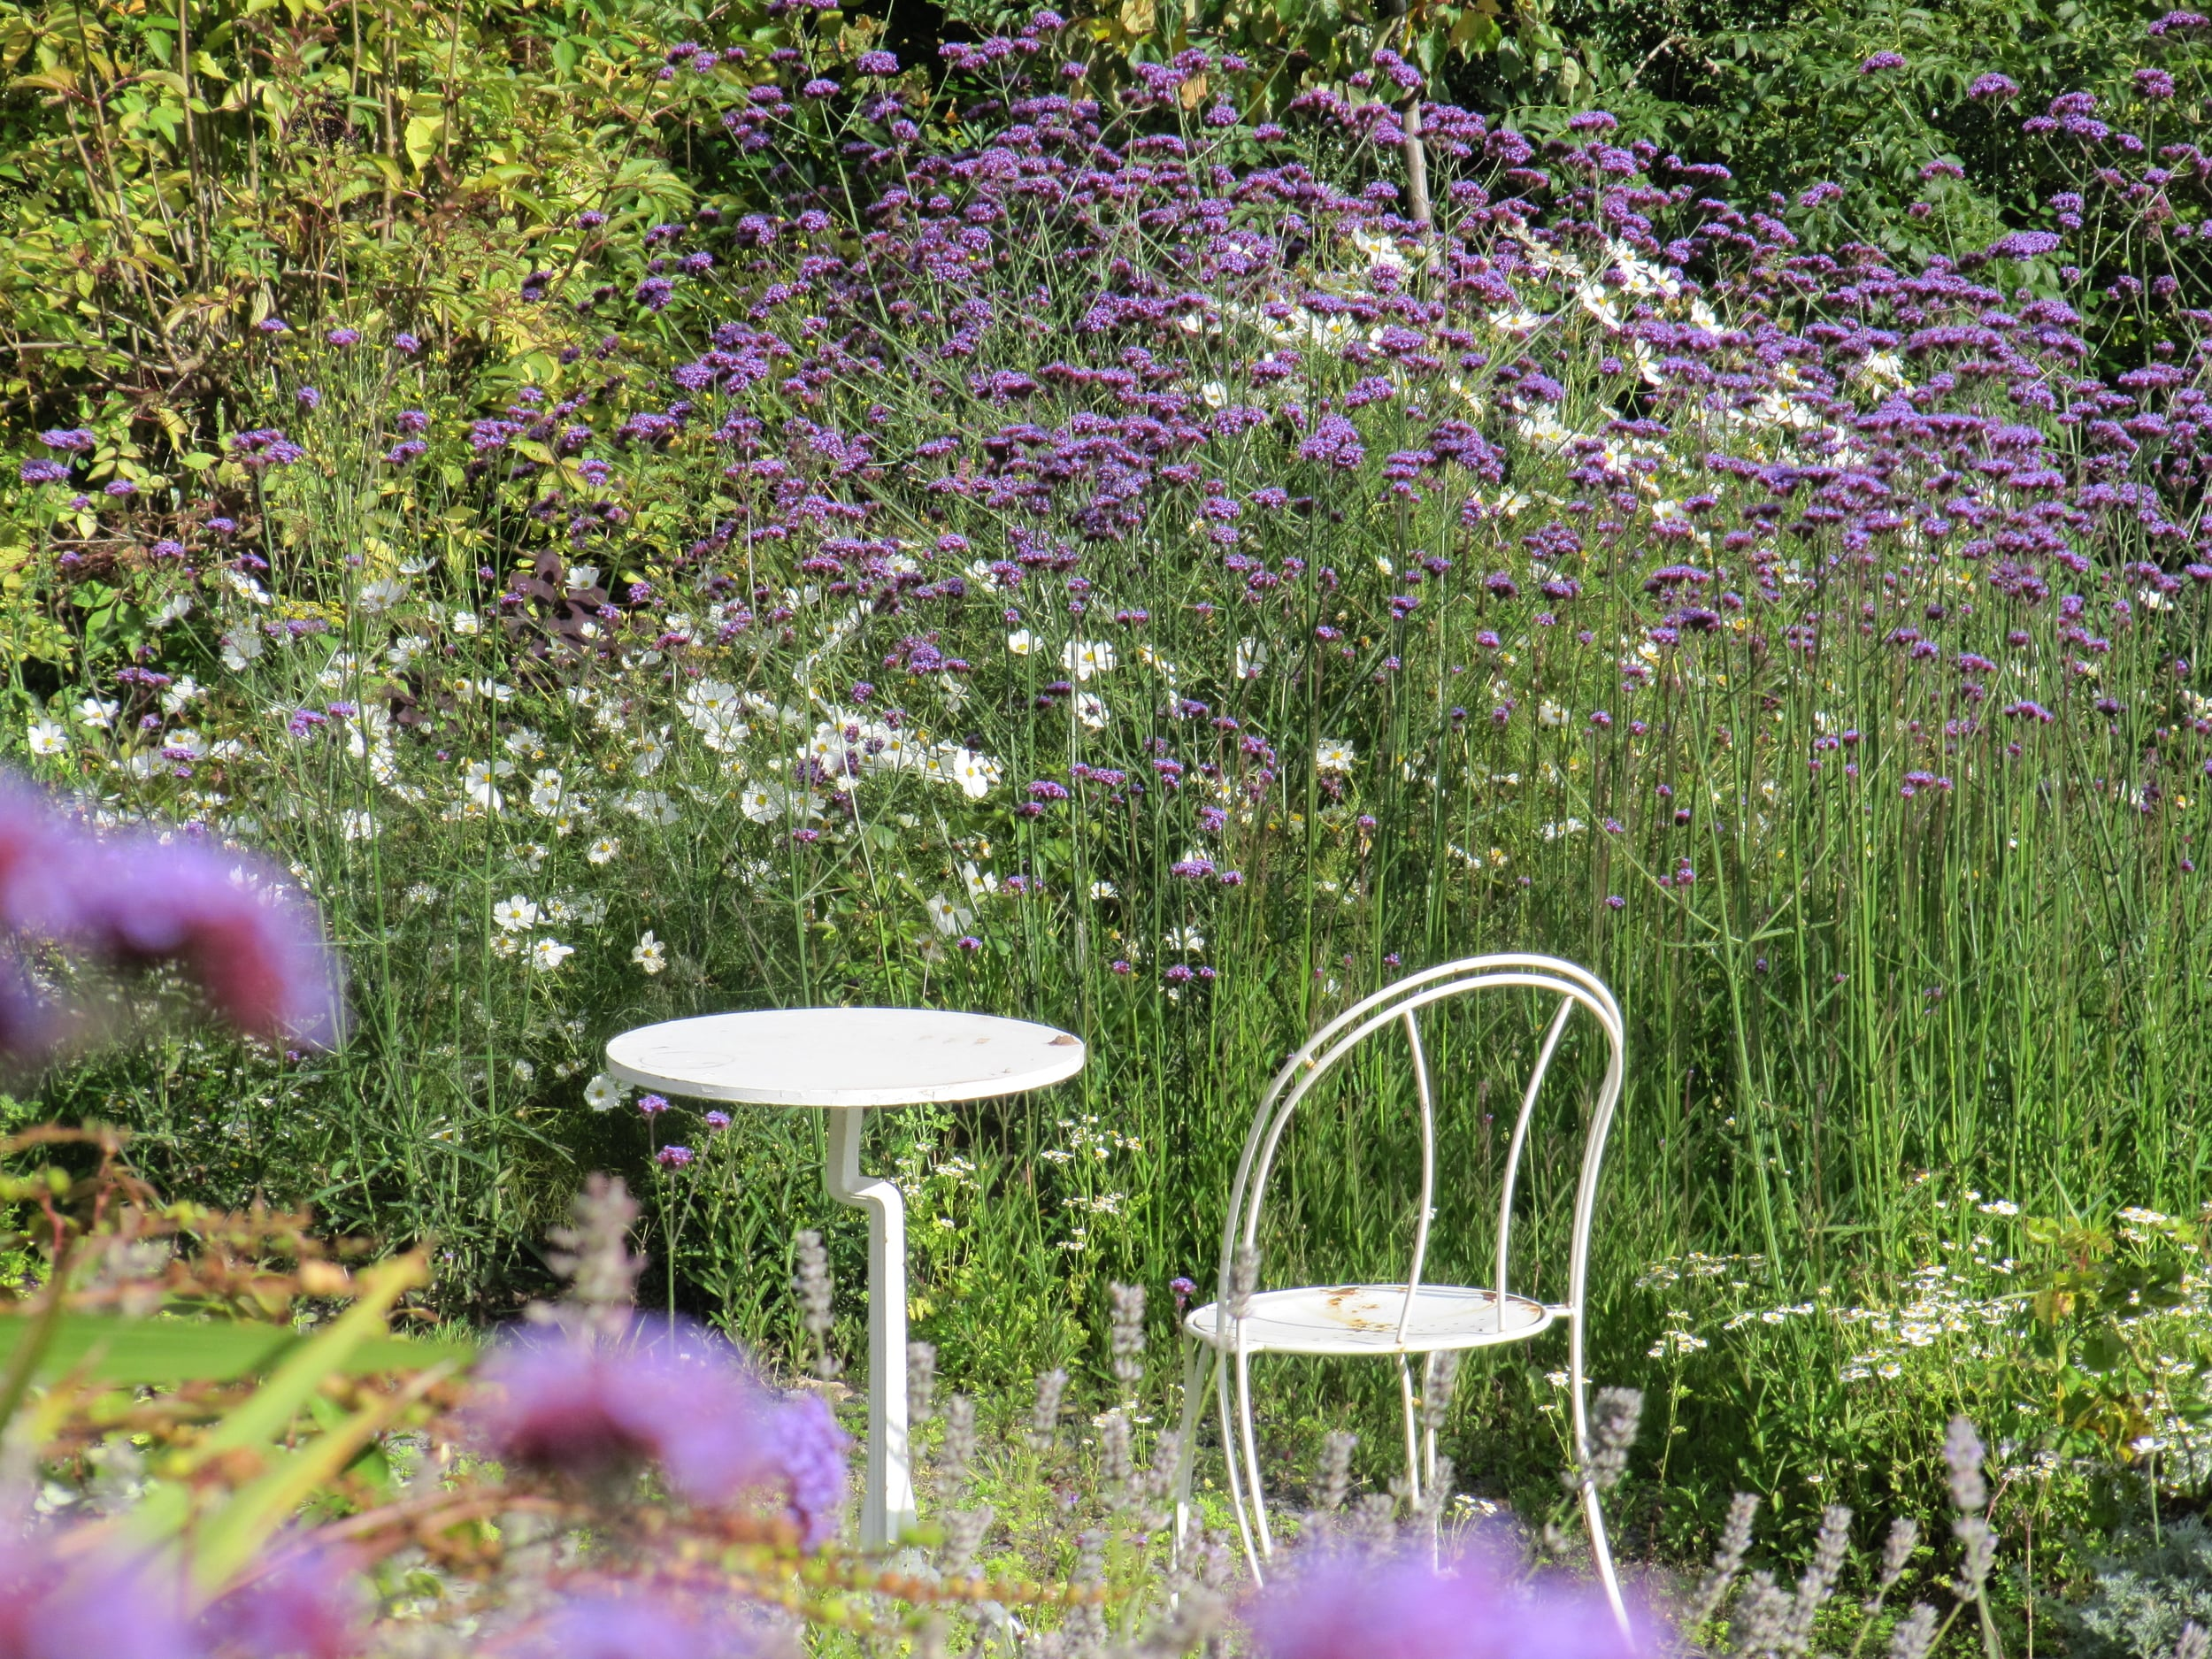 A perfect summer seat for afternoon tea or a glass of sparkling wine among the dog daisies and Verbena.